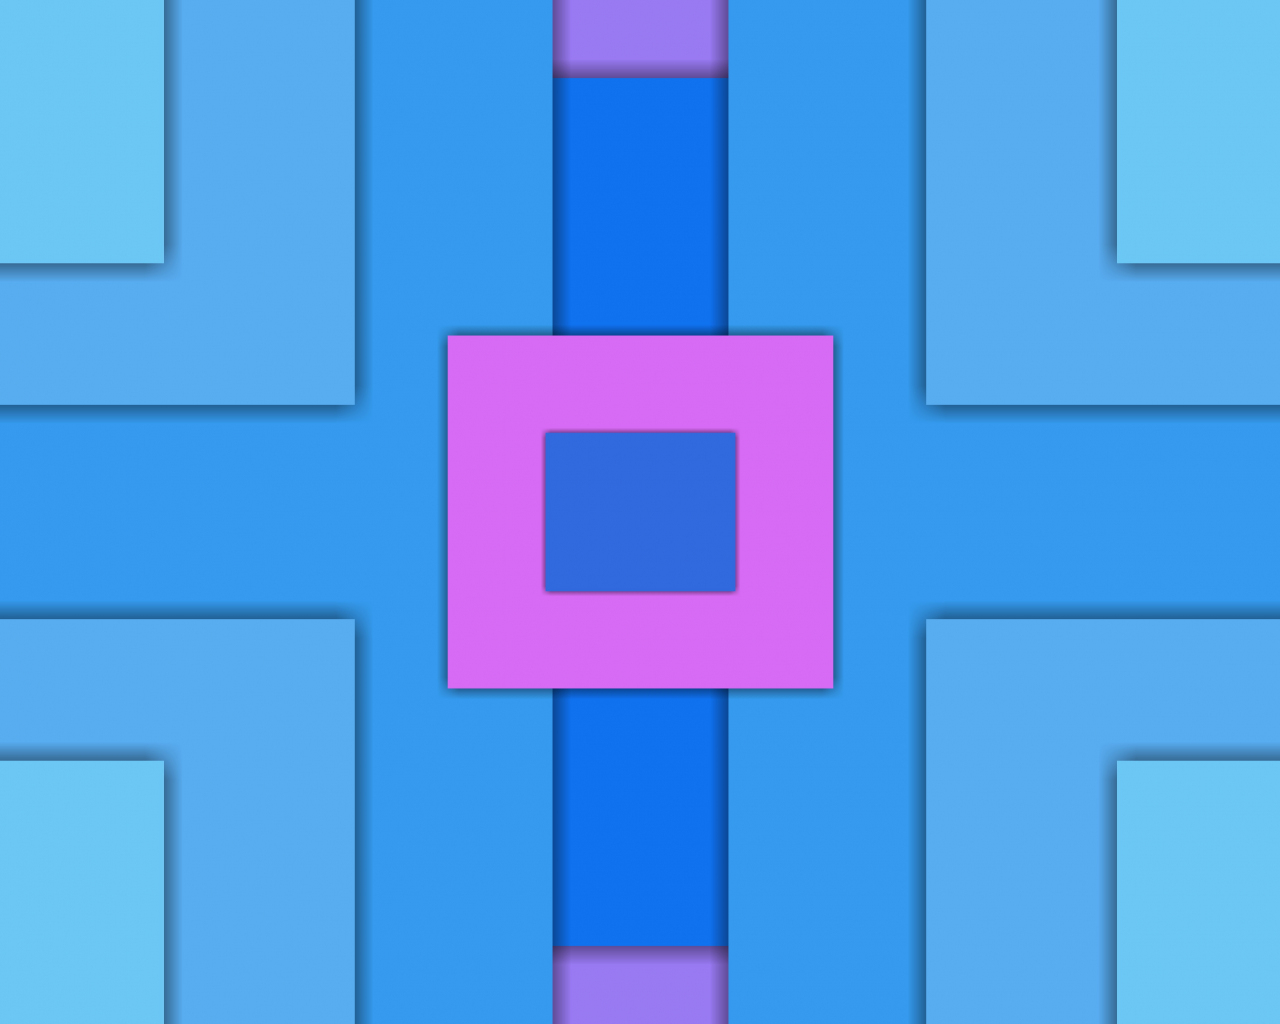 Squares, abstract, material design, 1280x1024 wallpaper